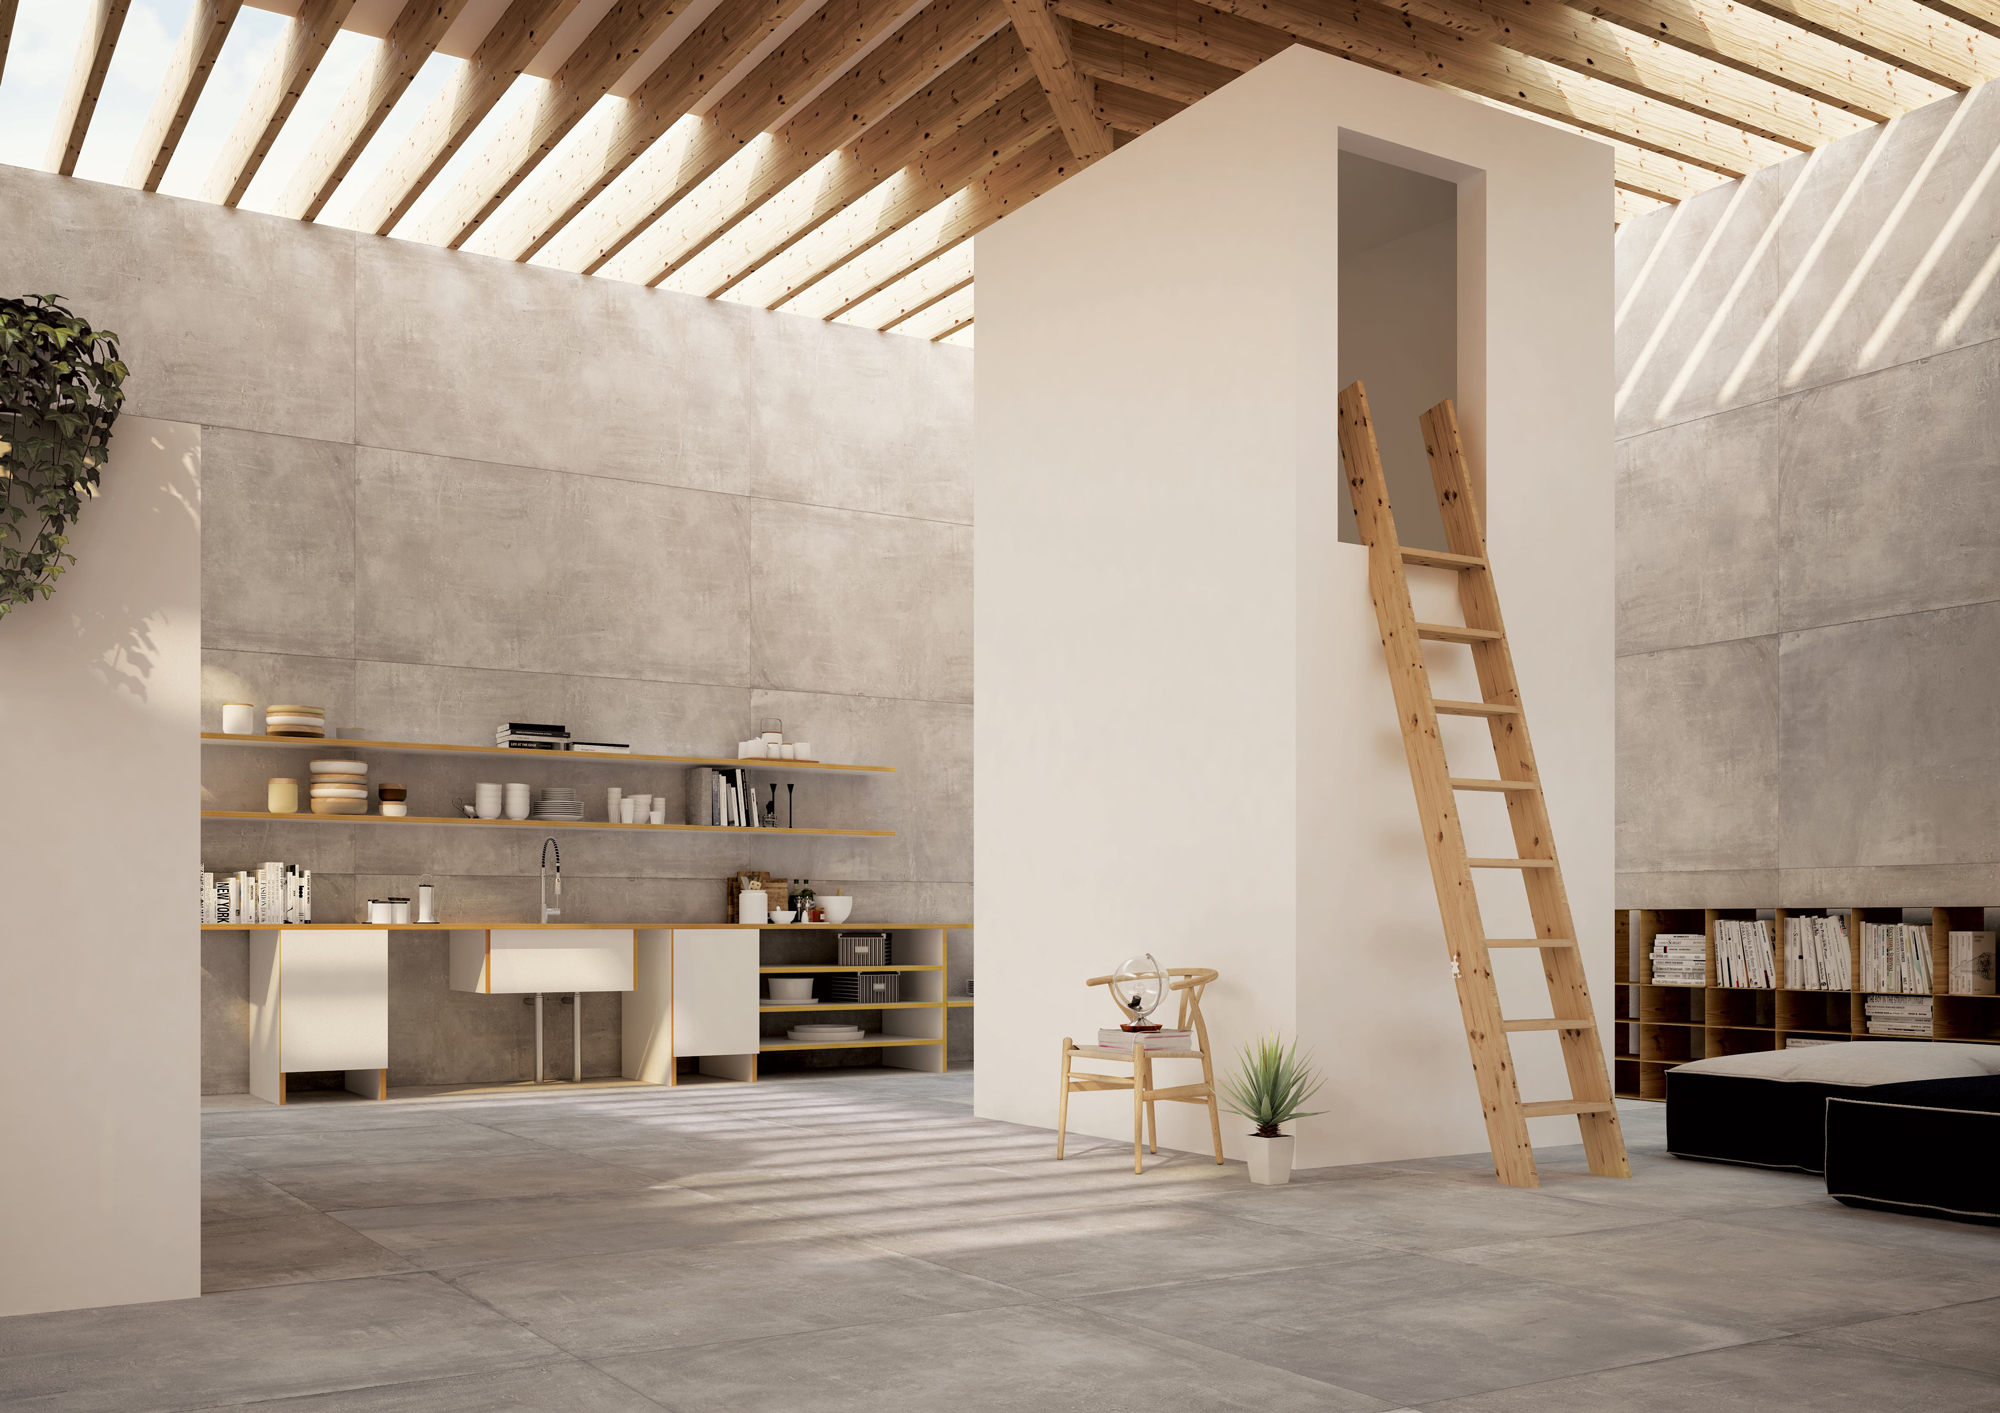 Benefits of Hiring Professional Residential Tiling Services